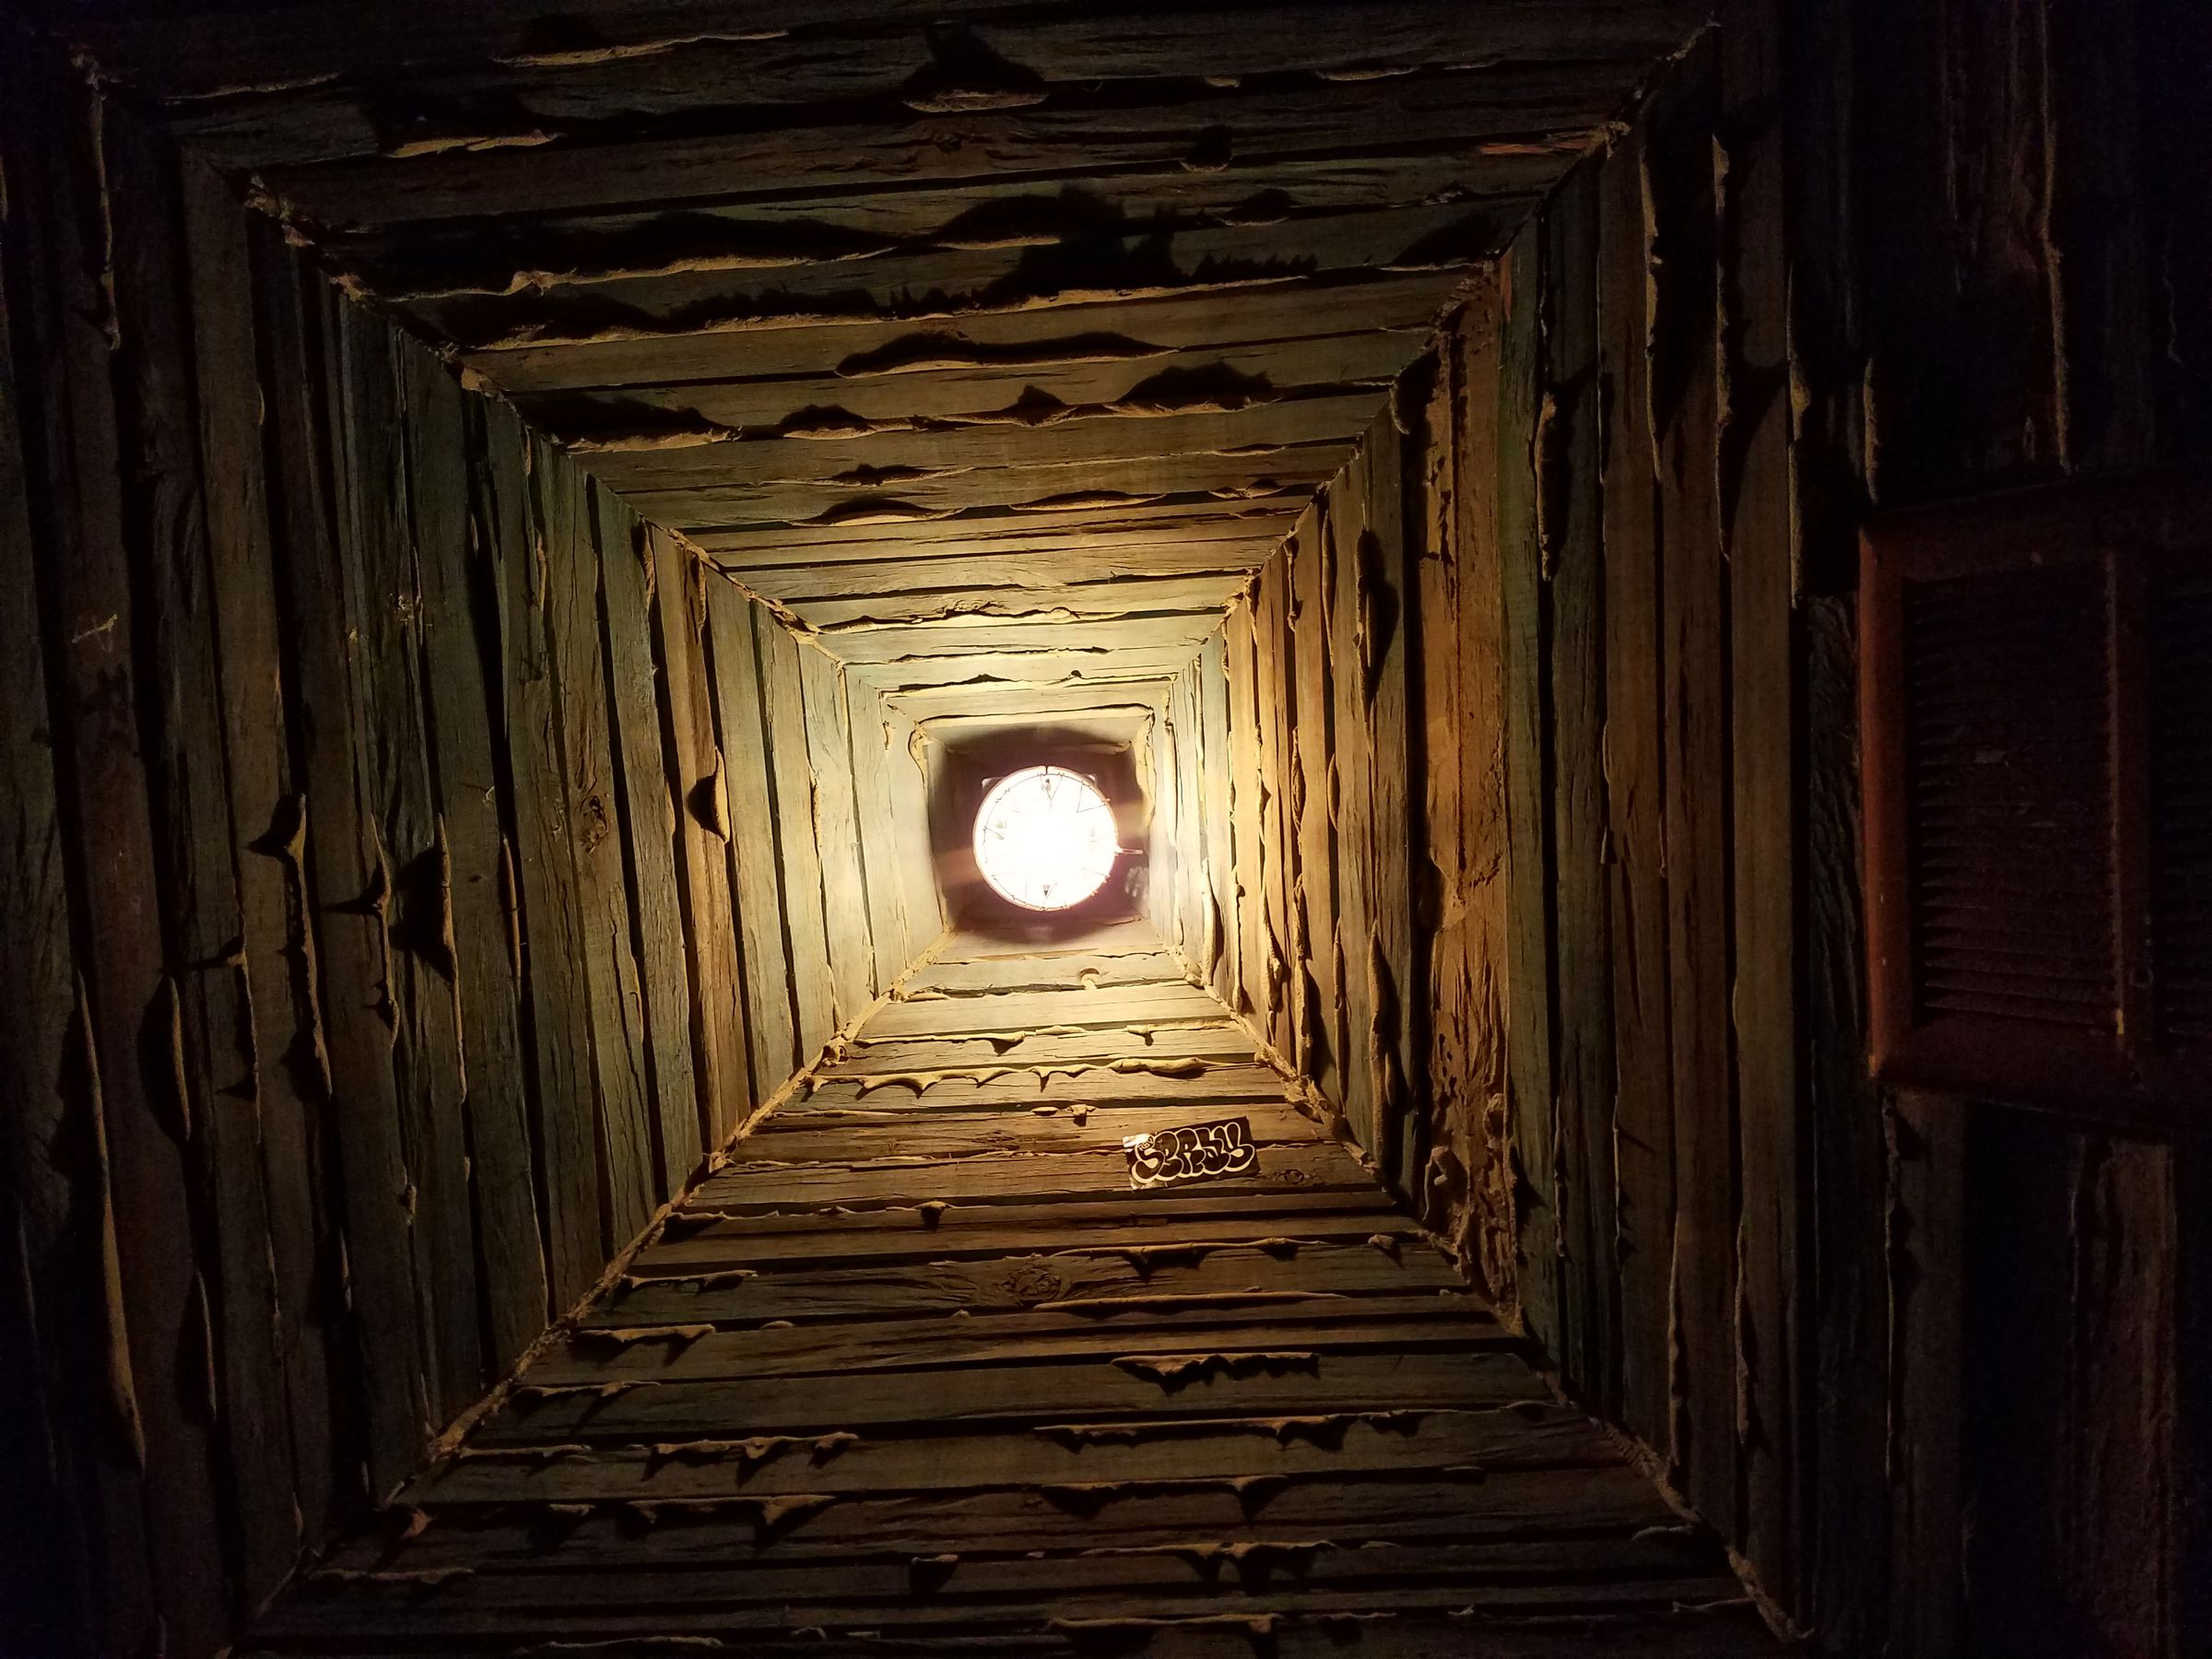 A photograph taken facing upward toward a pyramidal ceiling made from wooden slats and dripping with dried caulk where they join. It is illuminated by a single yellow lightbulb that casts some stark shadows onto the textured ceiling.